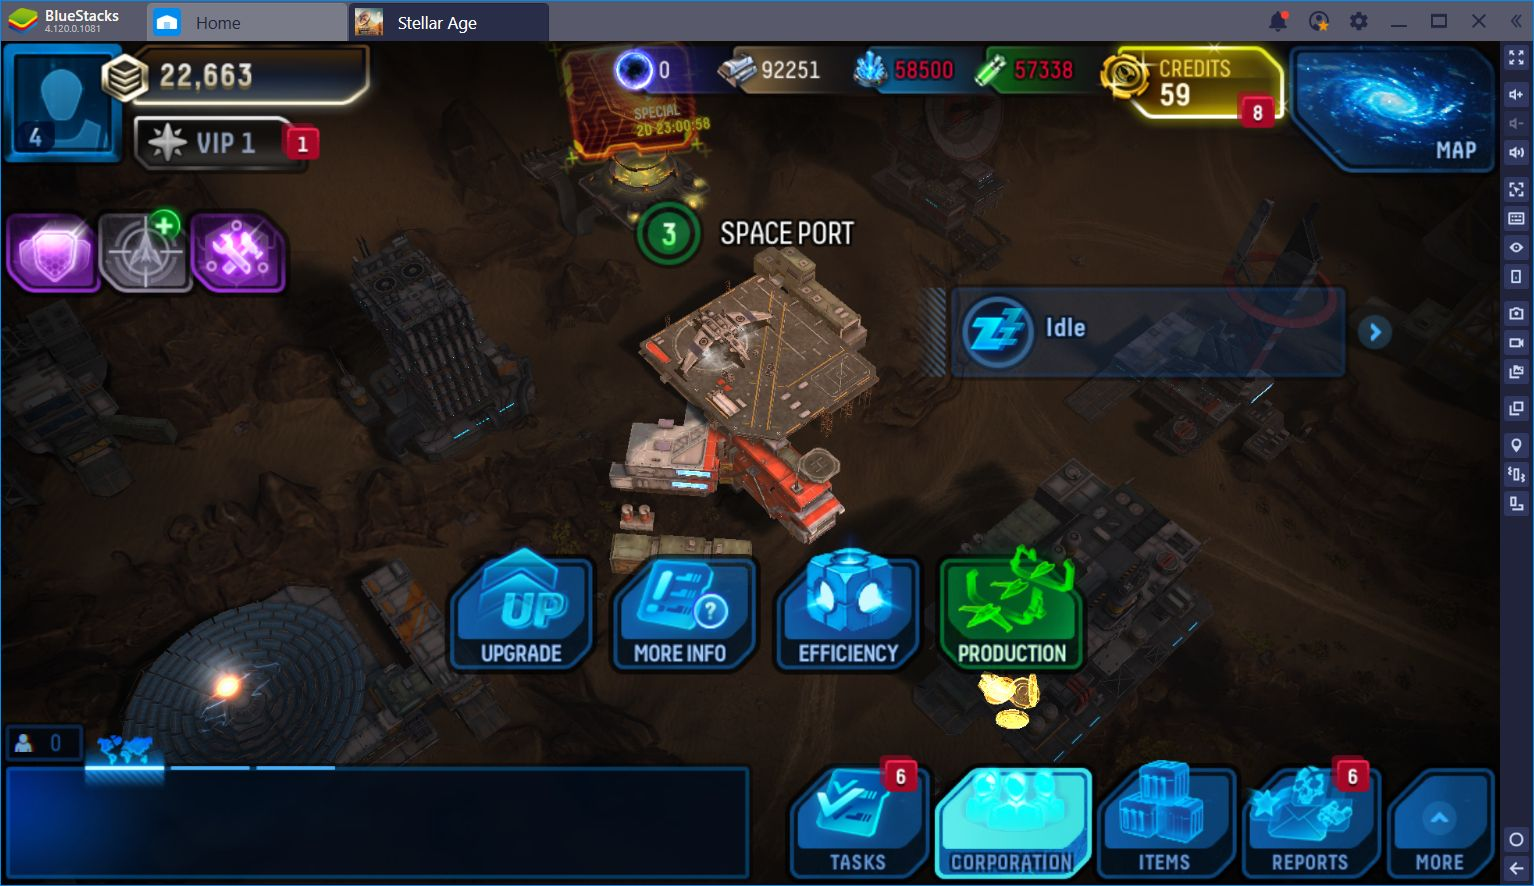 The Basics of Combat in Stellar Age on BlueStacks